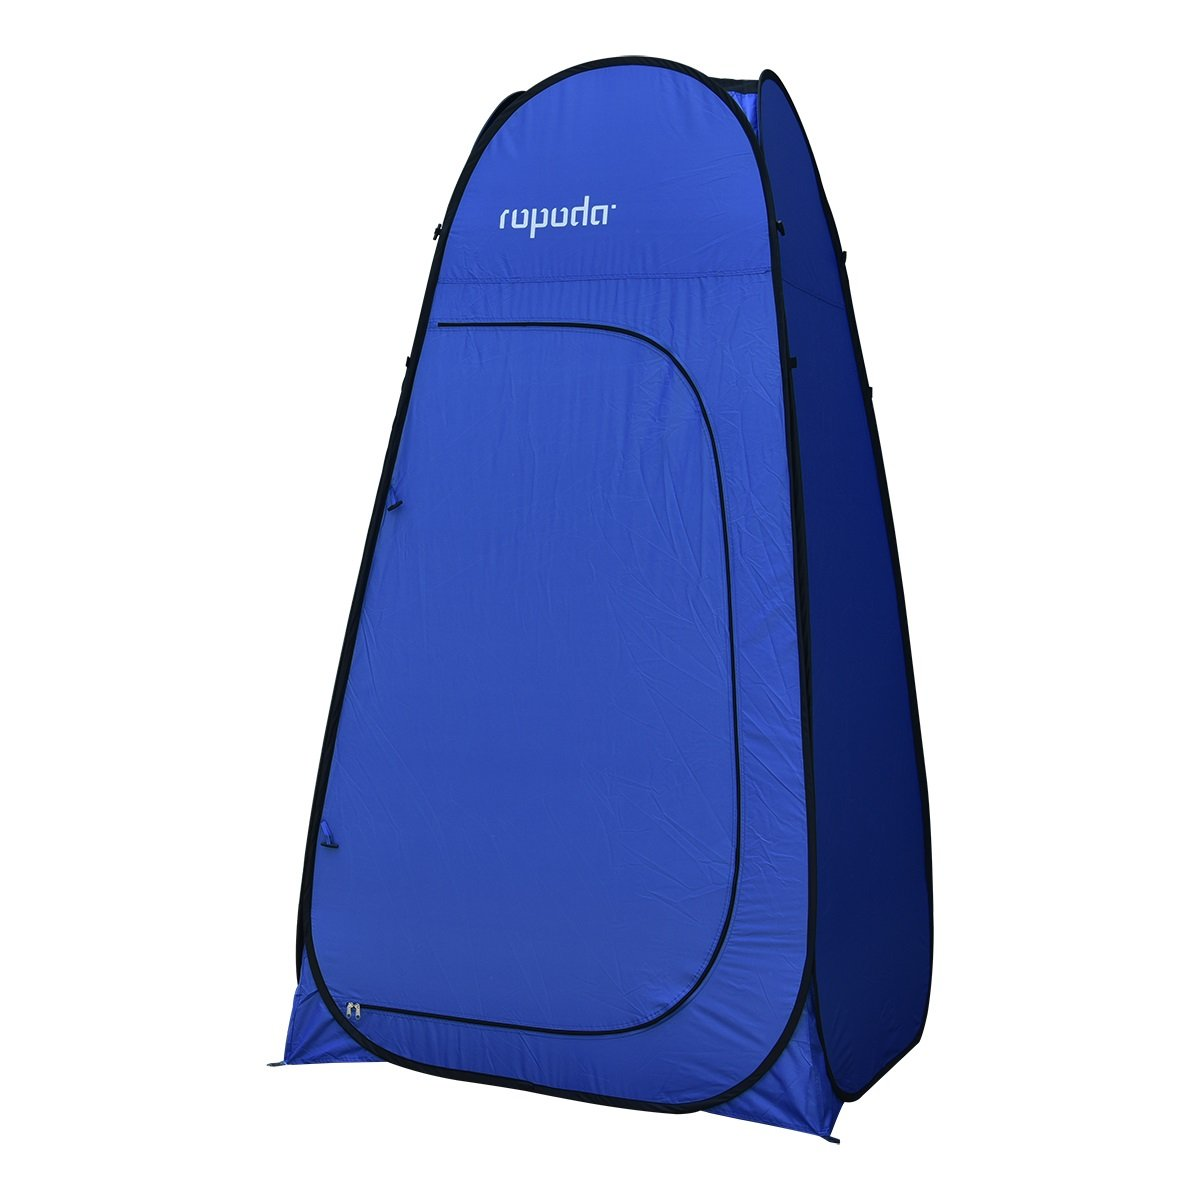 ropoda Outdoor Changing Room Portable Waterproof Shower Tents Camping Shower/Toilet with Carry Bag (blue) by MECY